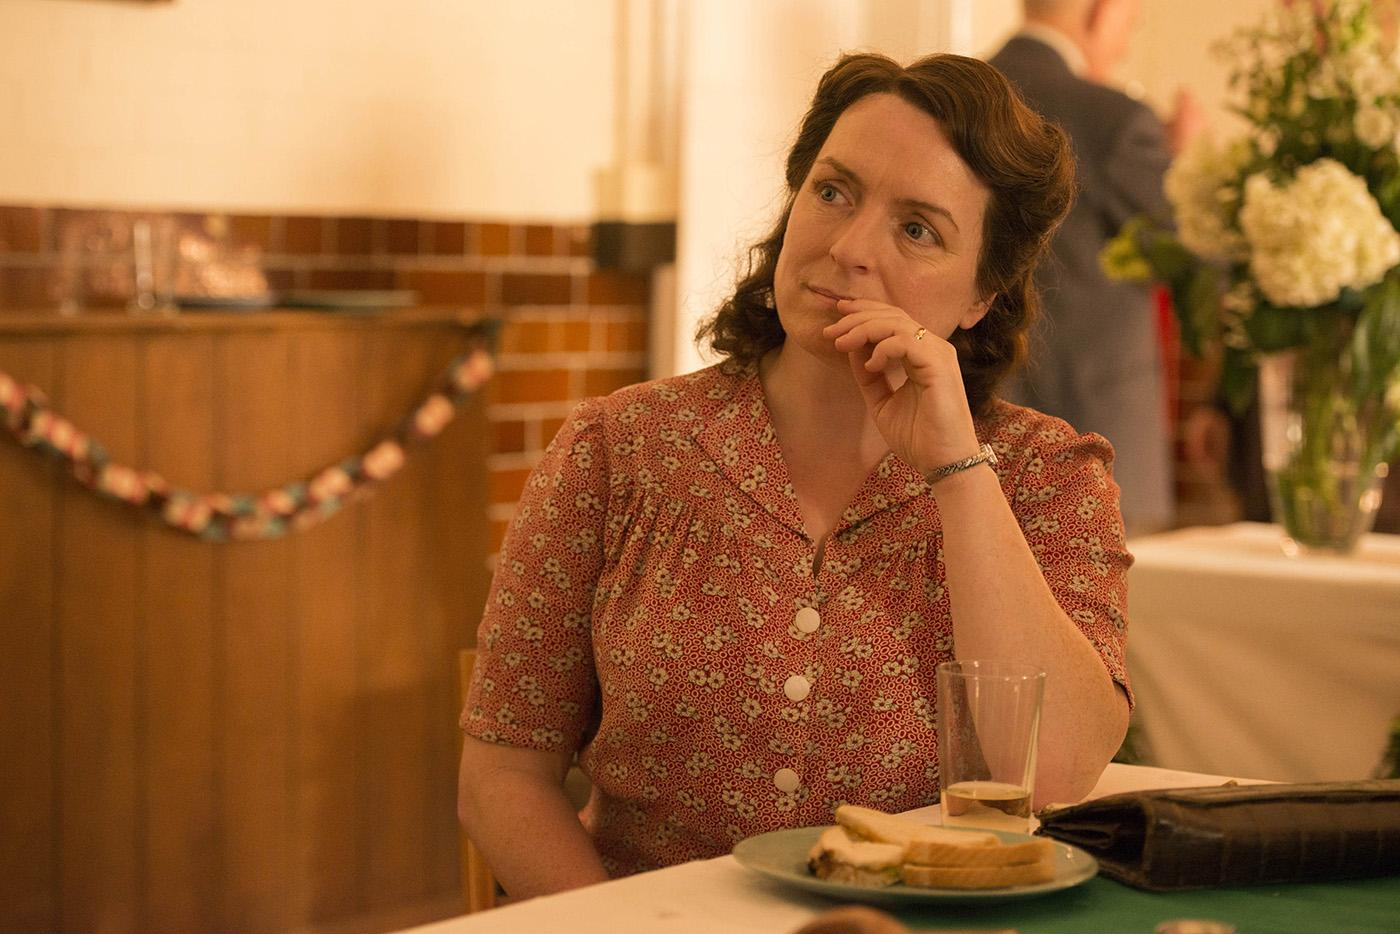 Claire Rushbrook as Pat Simms in 'Home Fires.' Photo: iTV Studios and MASTERPIECE